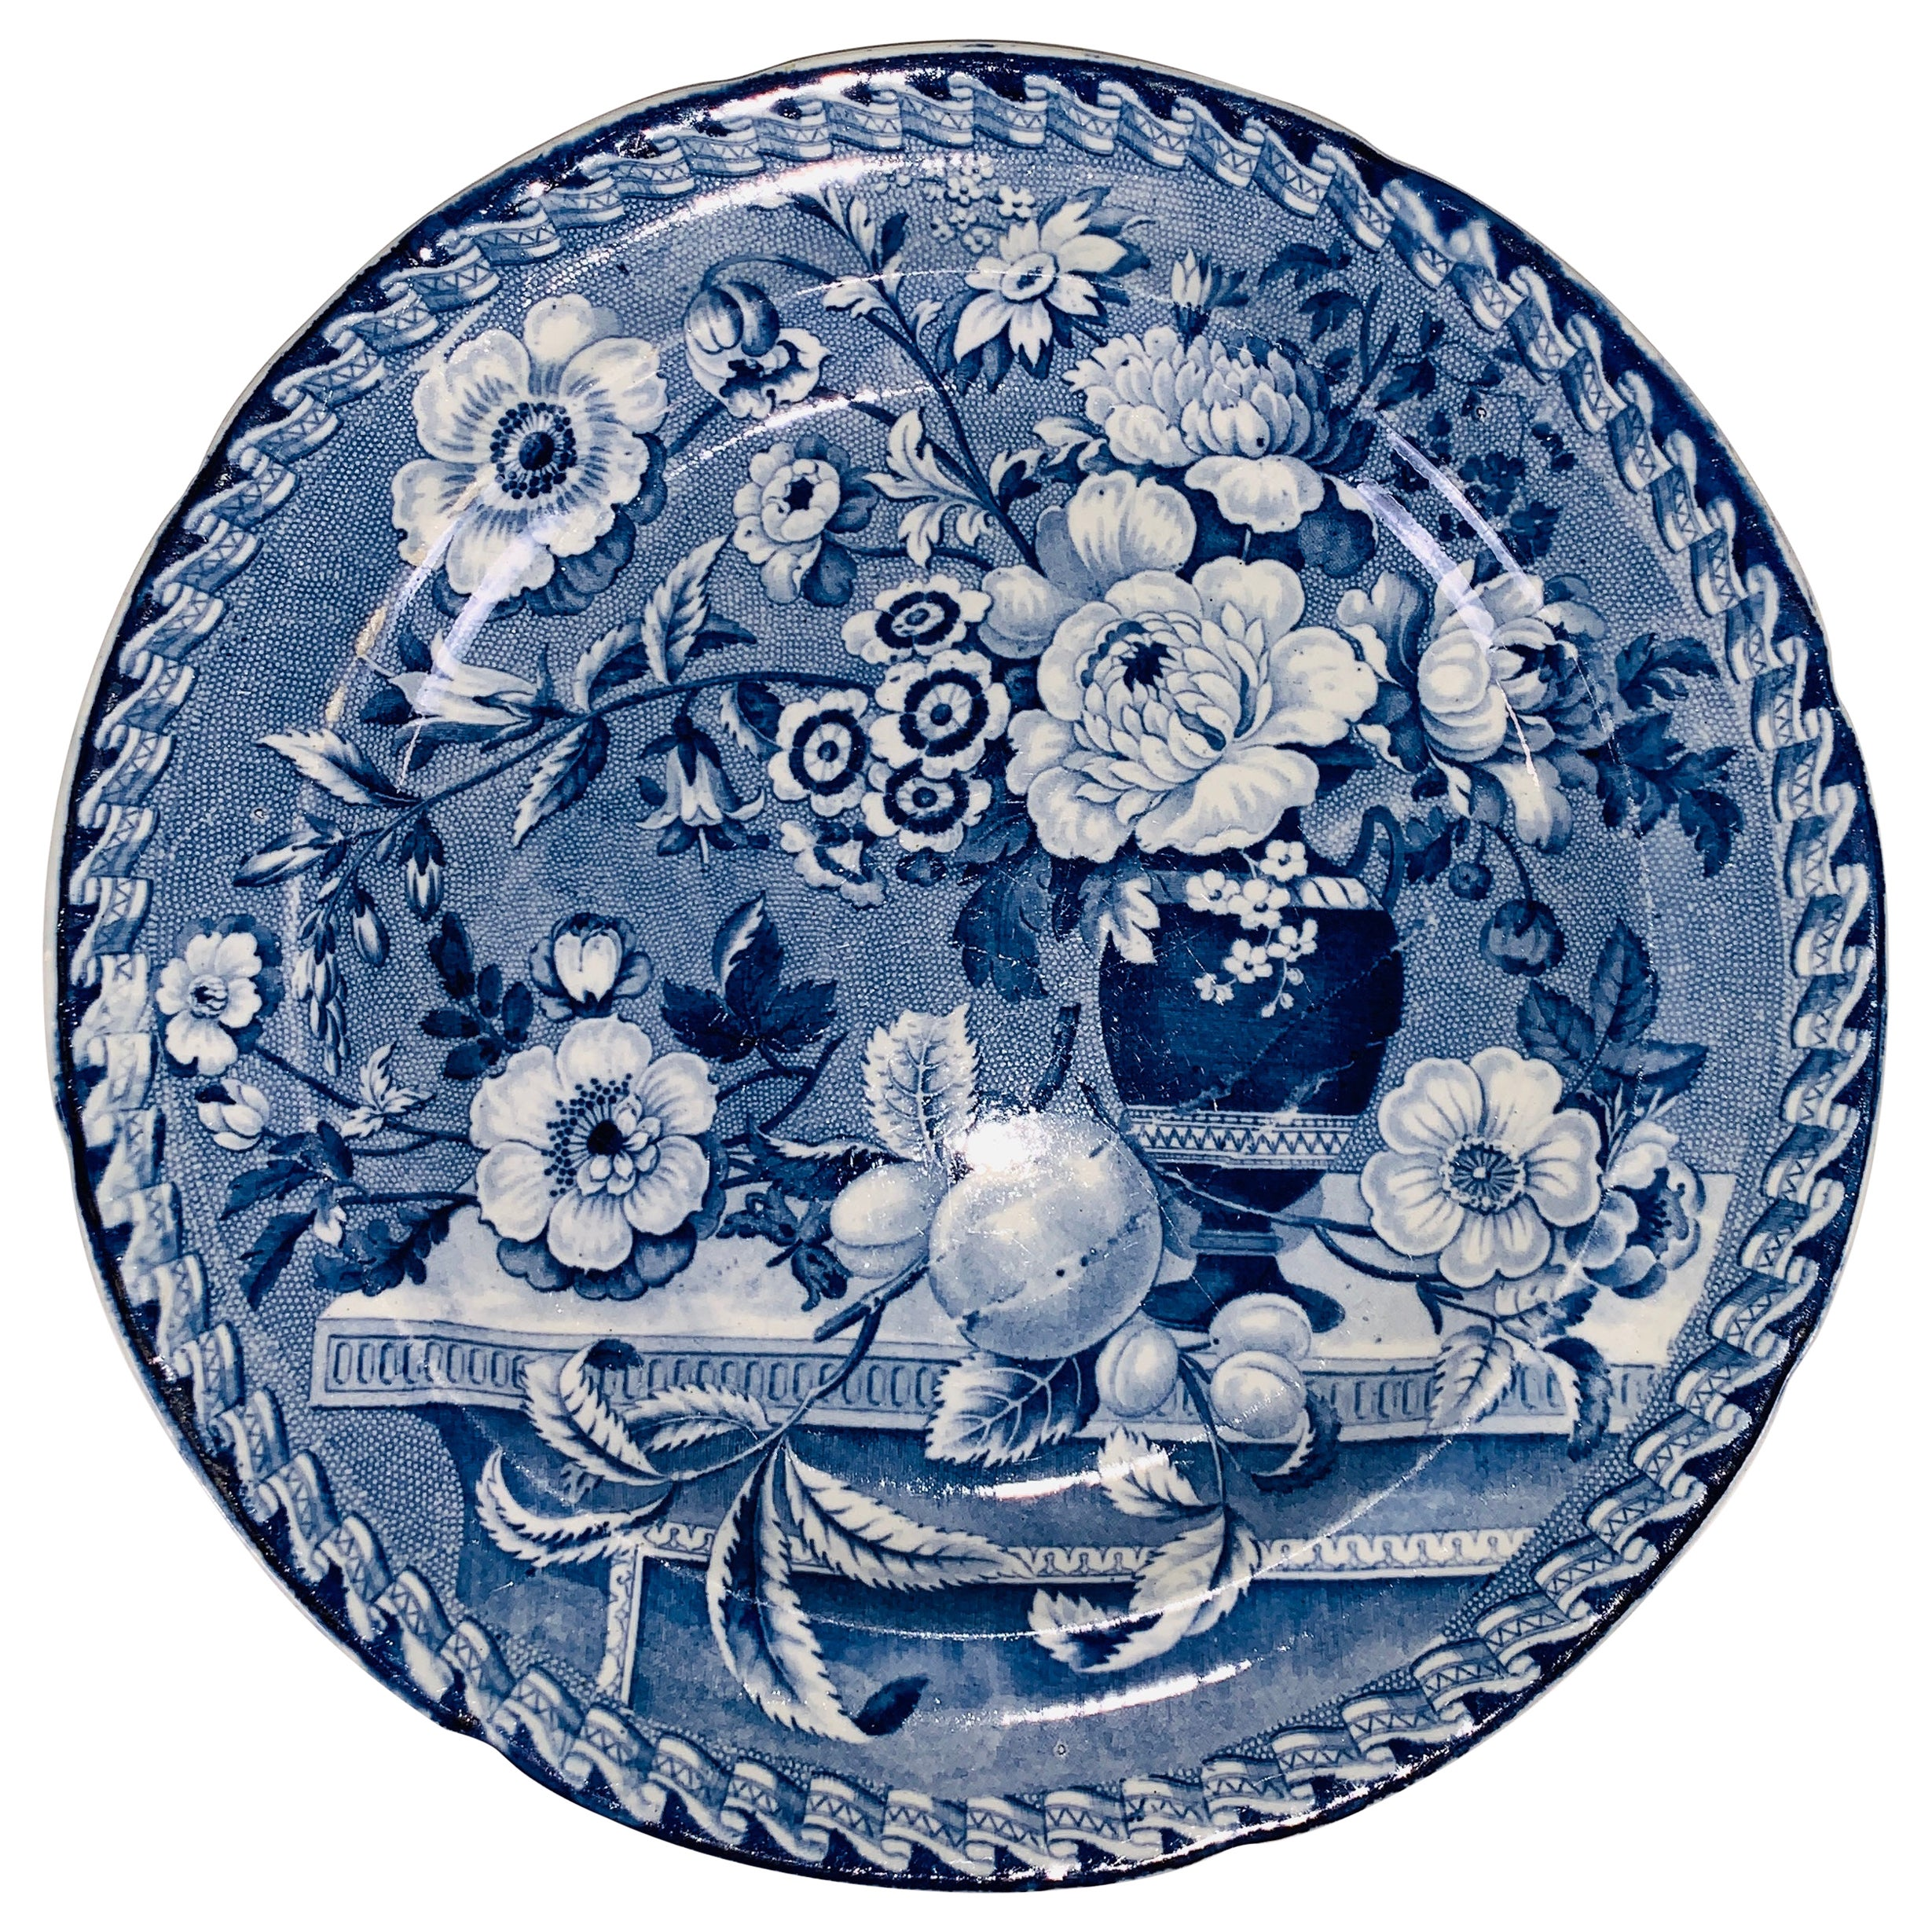 The Collection of Mario Buatta a Blue and White Staffordshire Plate